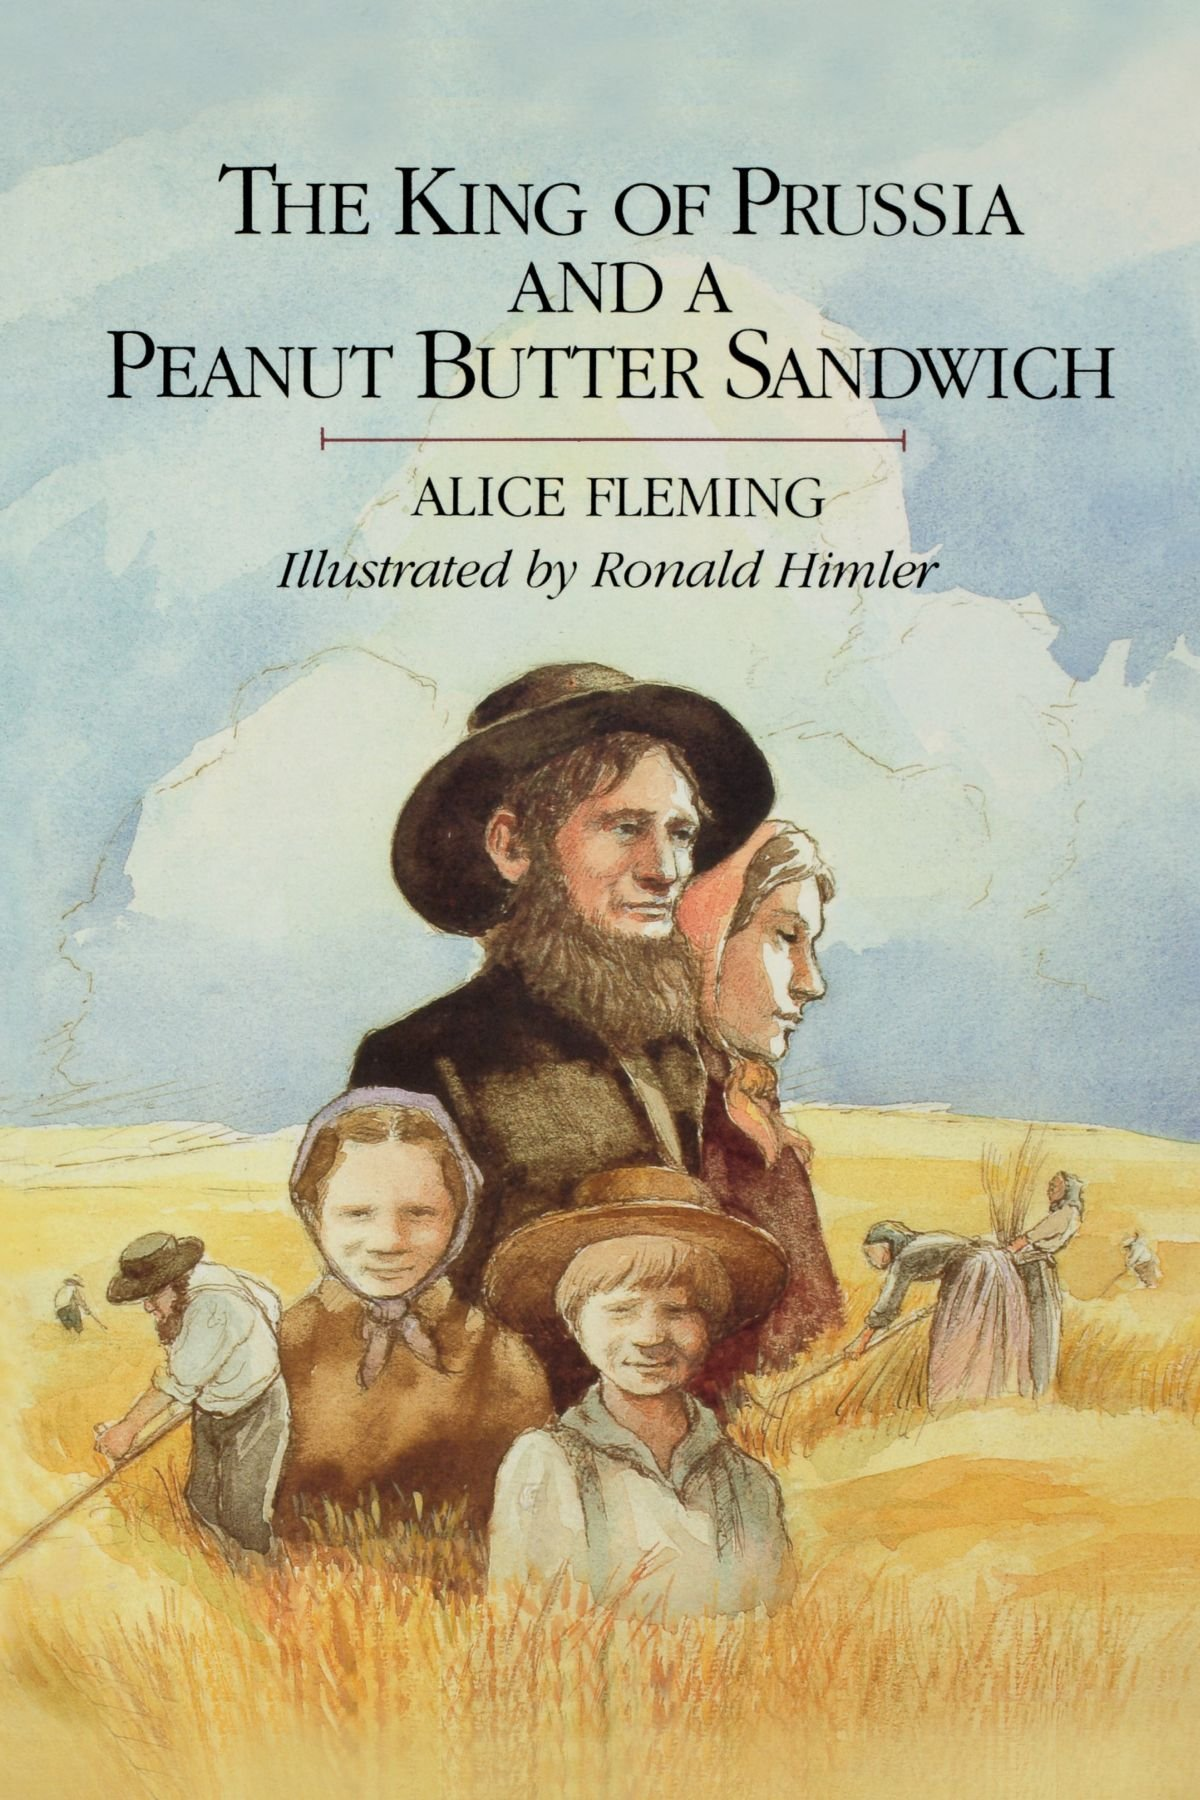 Download The King of Prussia and a Peanut Butter Sandwich PDF